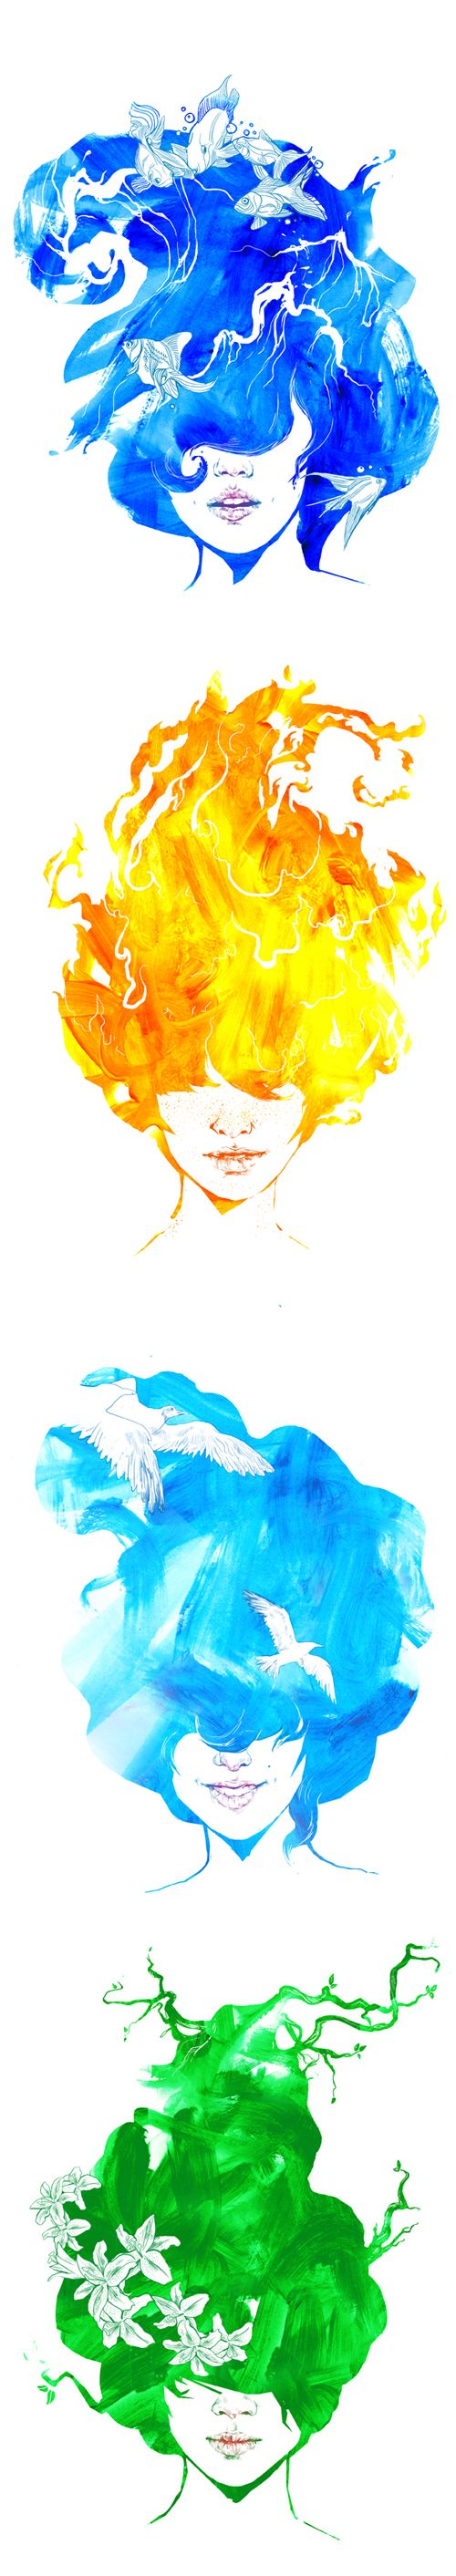 What A Gorgeous Interpretation Of The 4 Elements With Images